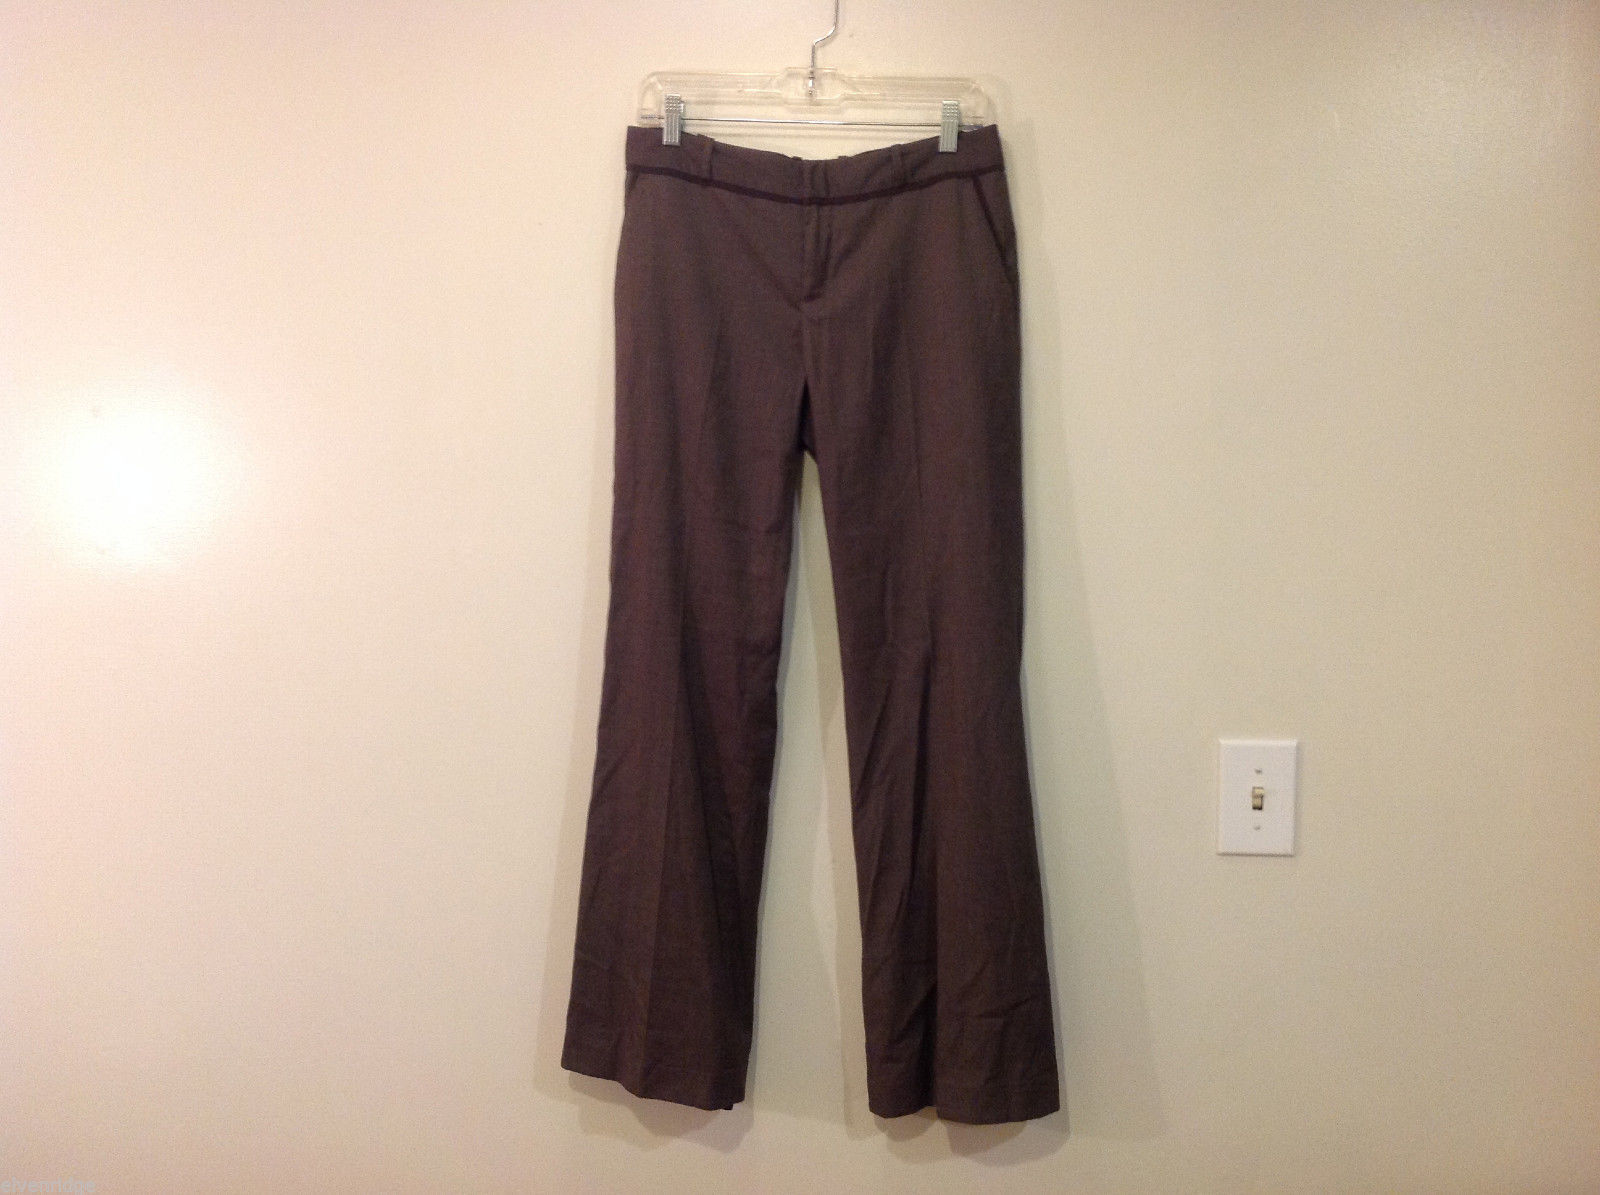 Banana Republic Ryan Fit Classic Brown Pants with Pockets, Size 8